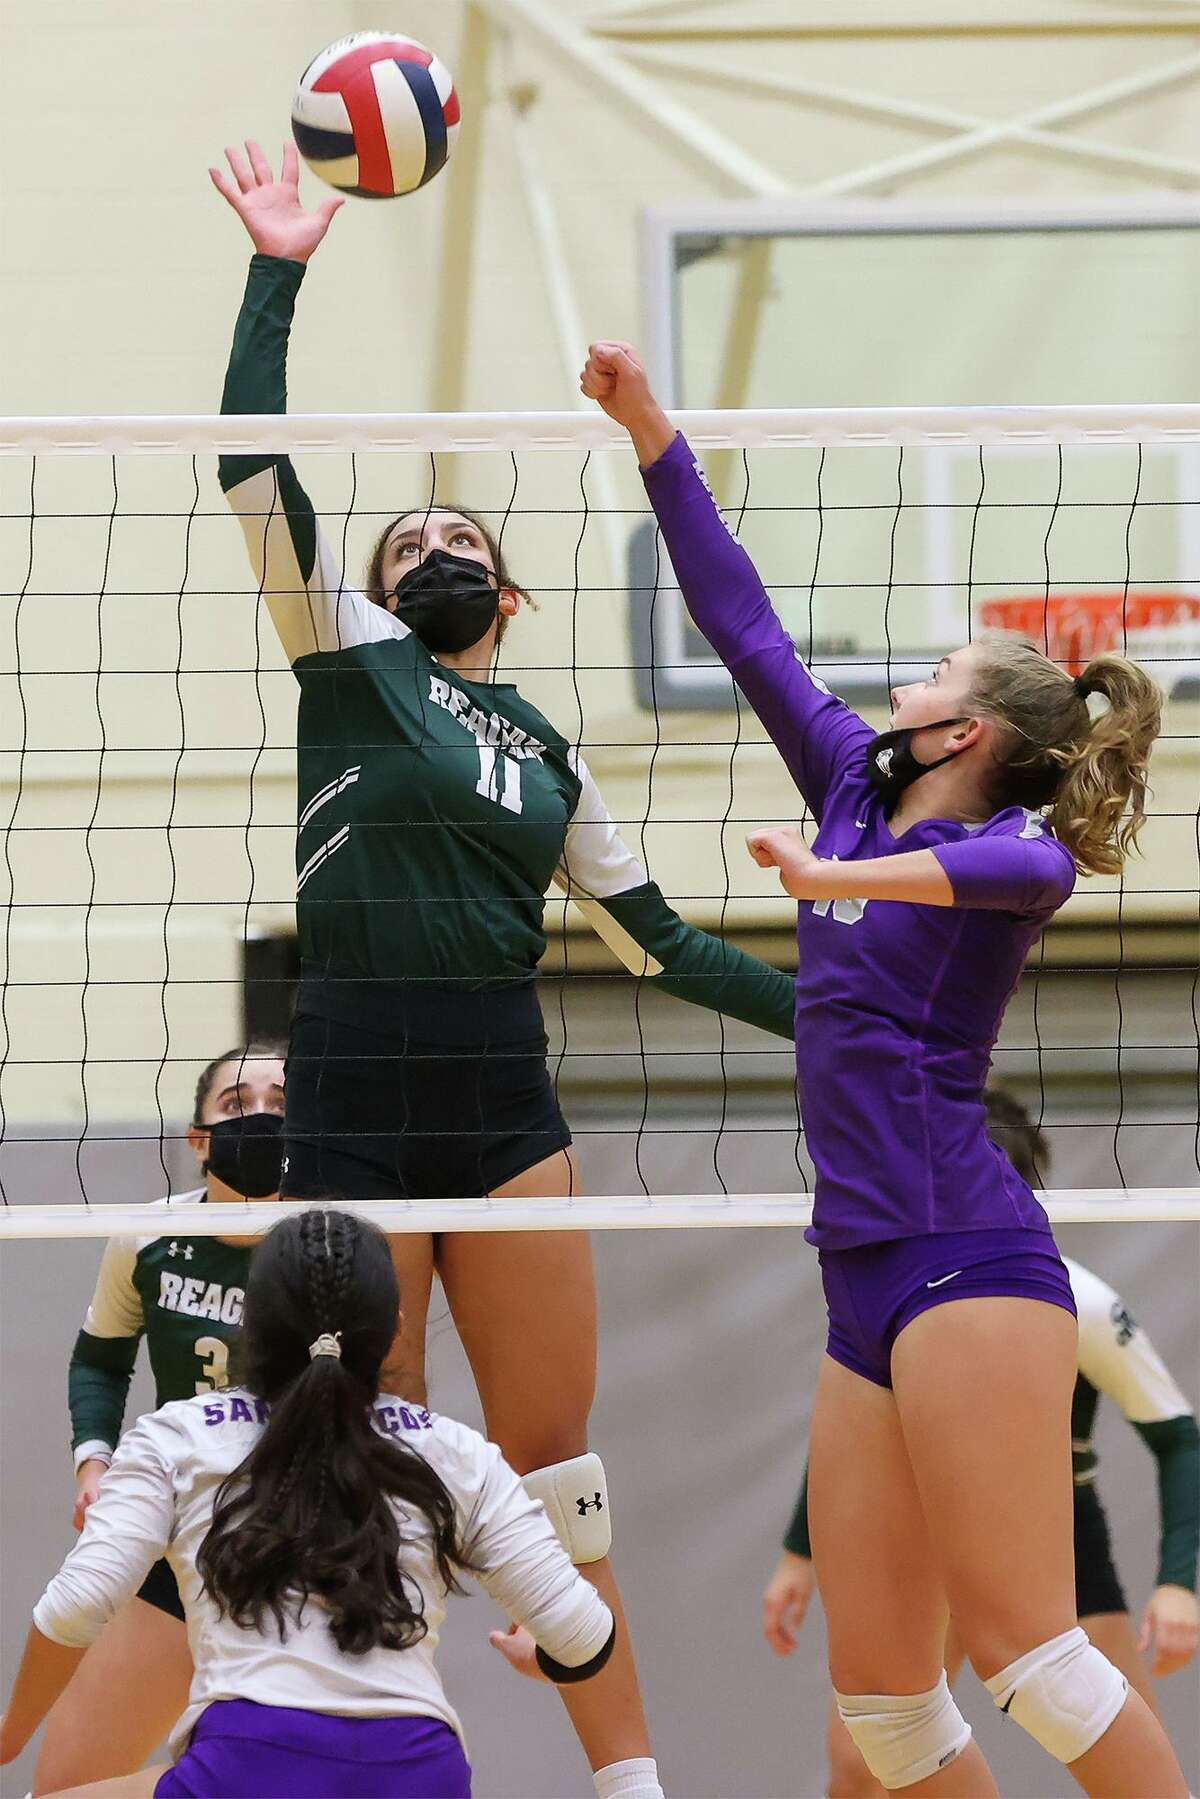 Reagan's Preslie Yates, left, looks to score over San Marcos' Emery Jones, right, during their Class 6A volleyball second-round playoff match with San Marcos at Littleton Gym on Tuesday, Nov. 23, 2020. Reagan won the match in three sets: 25-20, 25-13, 25-12.